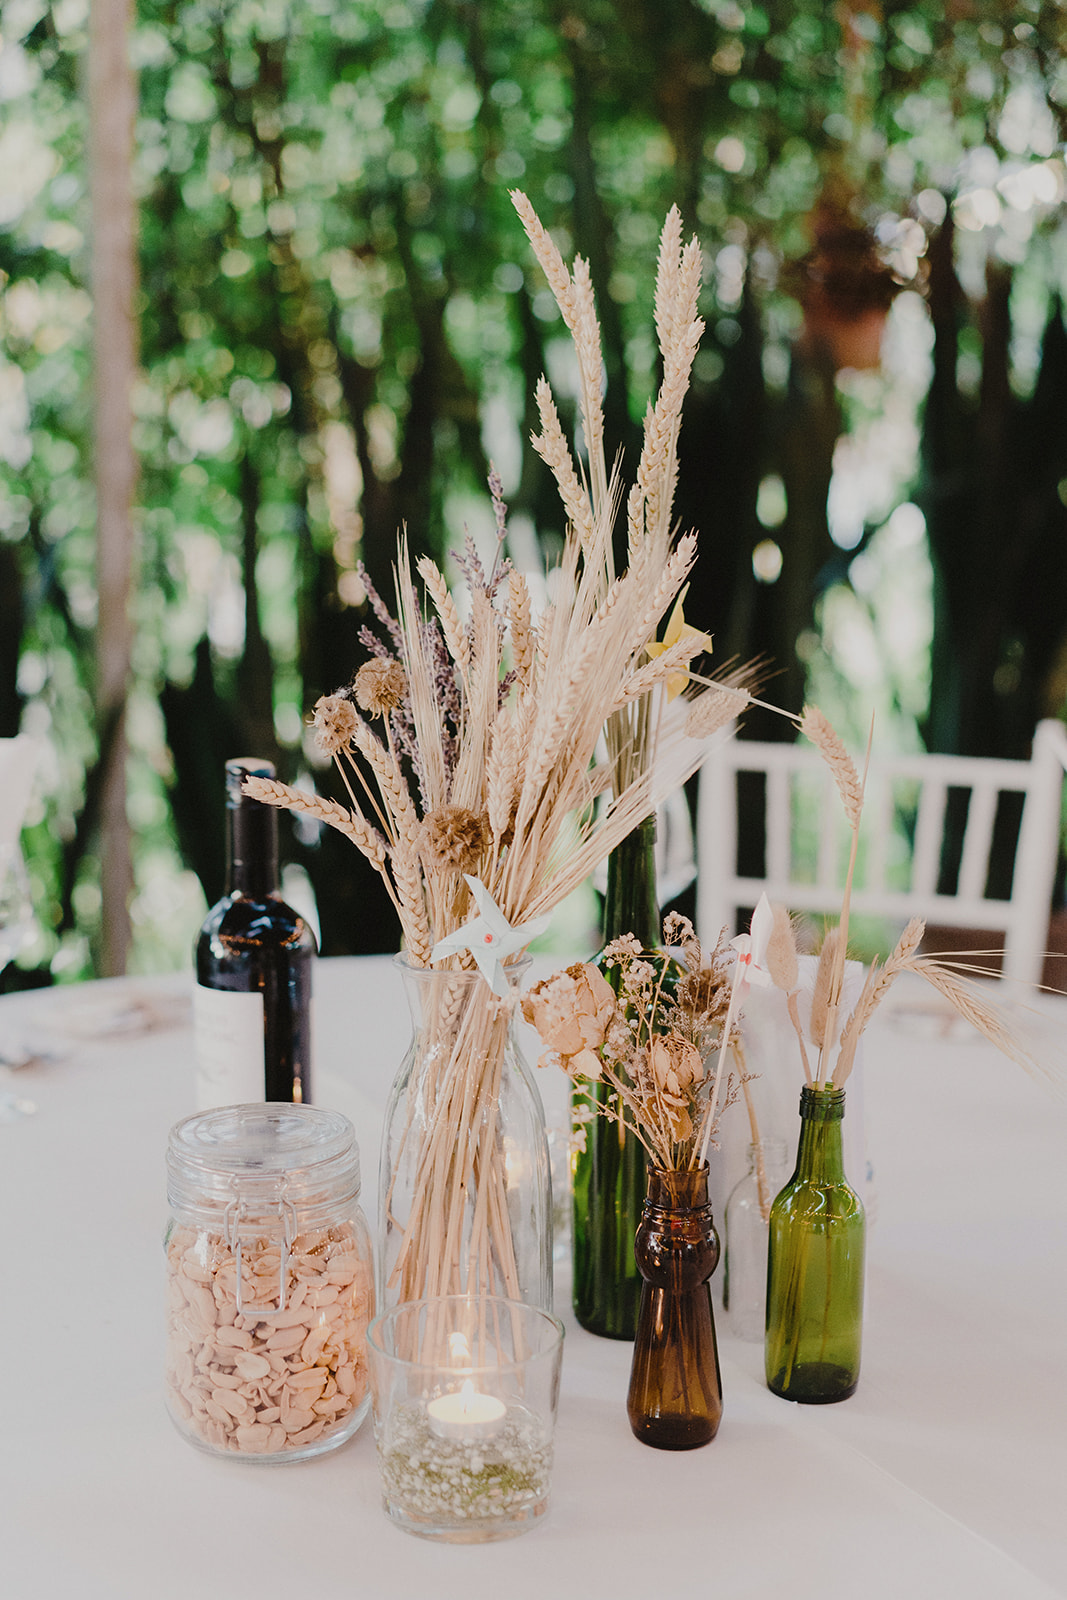 i have a huge collection of glass jars over the years (couldn't help but to keep all of it) and the jars became super useful for our table centerpieces. we filled them up with some dried flowers, nuts, tealight candles..